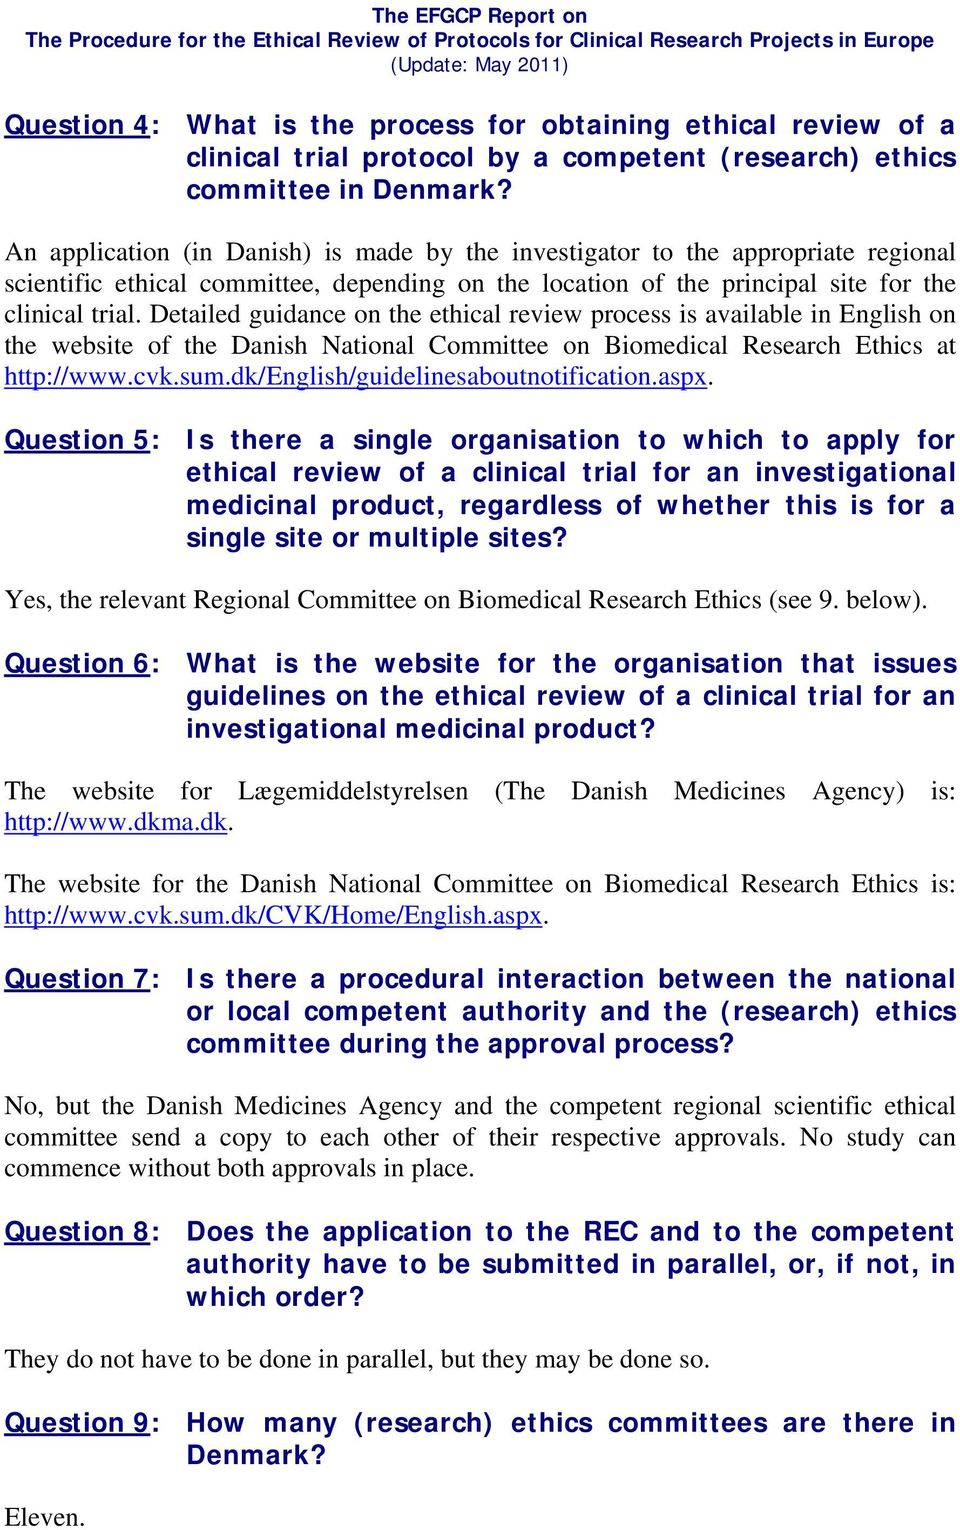 Detailed guidance on the ethical review process is available in English on the website of the Danish National Committee on Biomedical Research Ethics at http://www.cvk.sum.